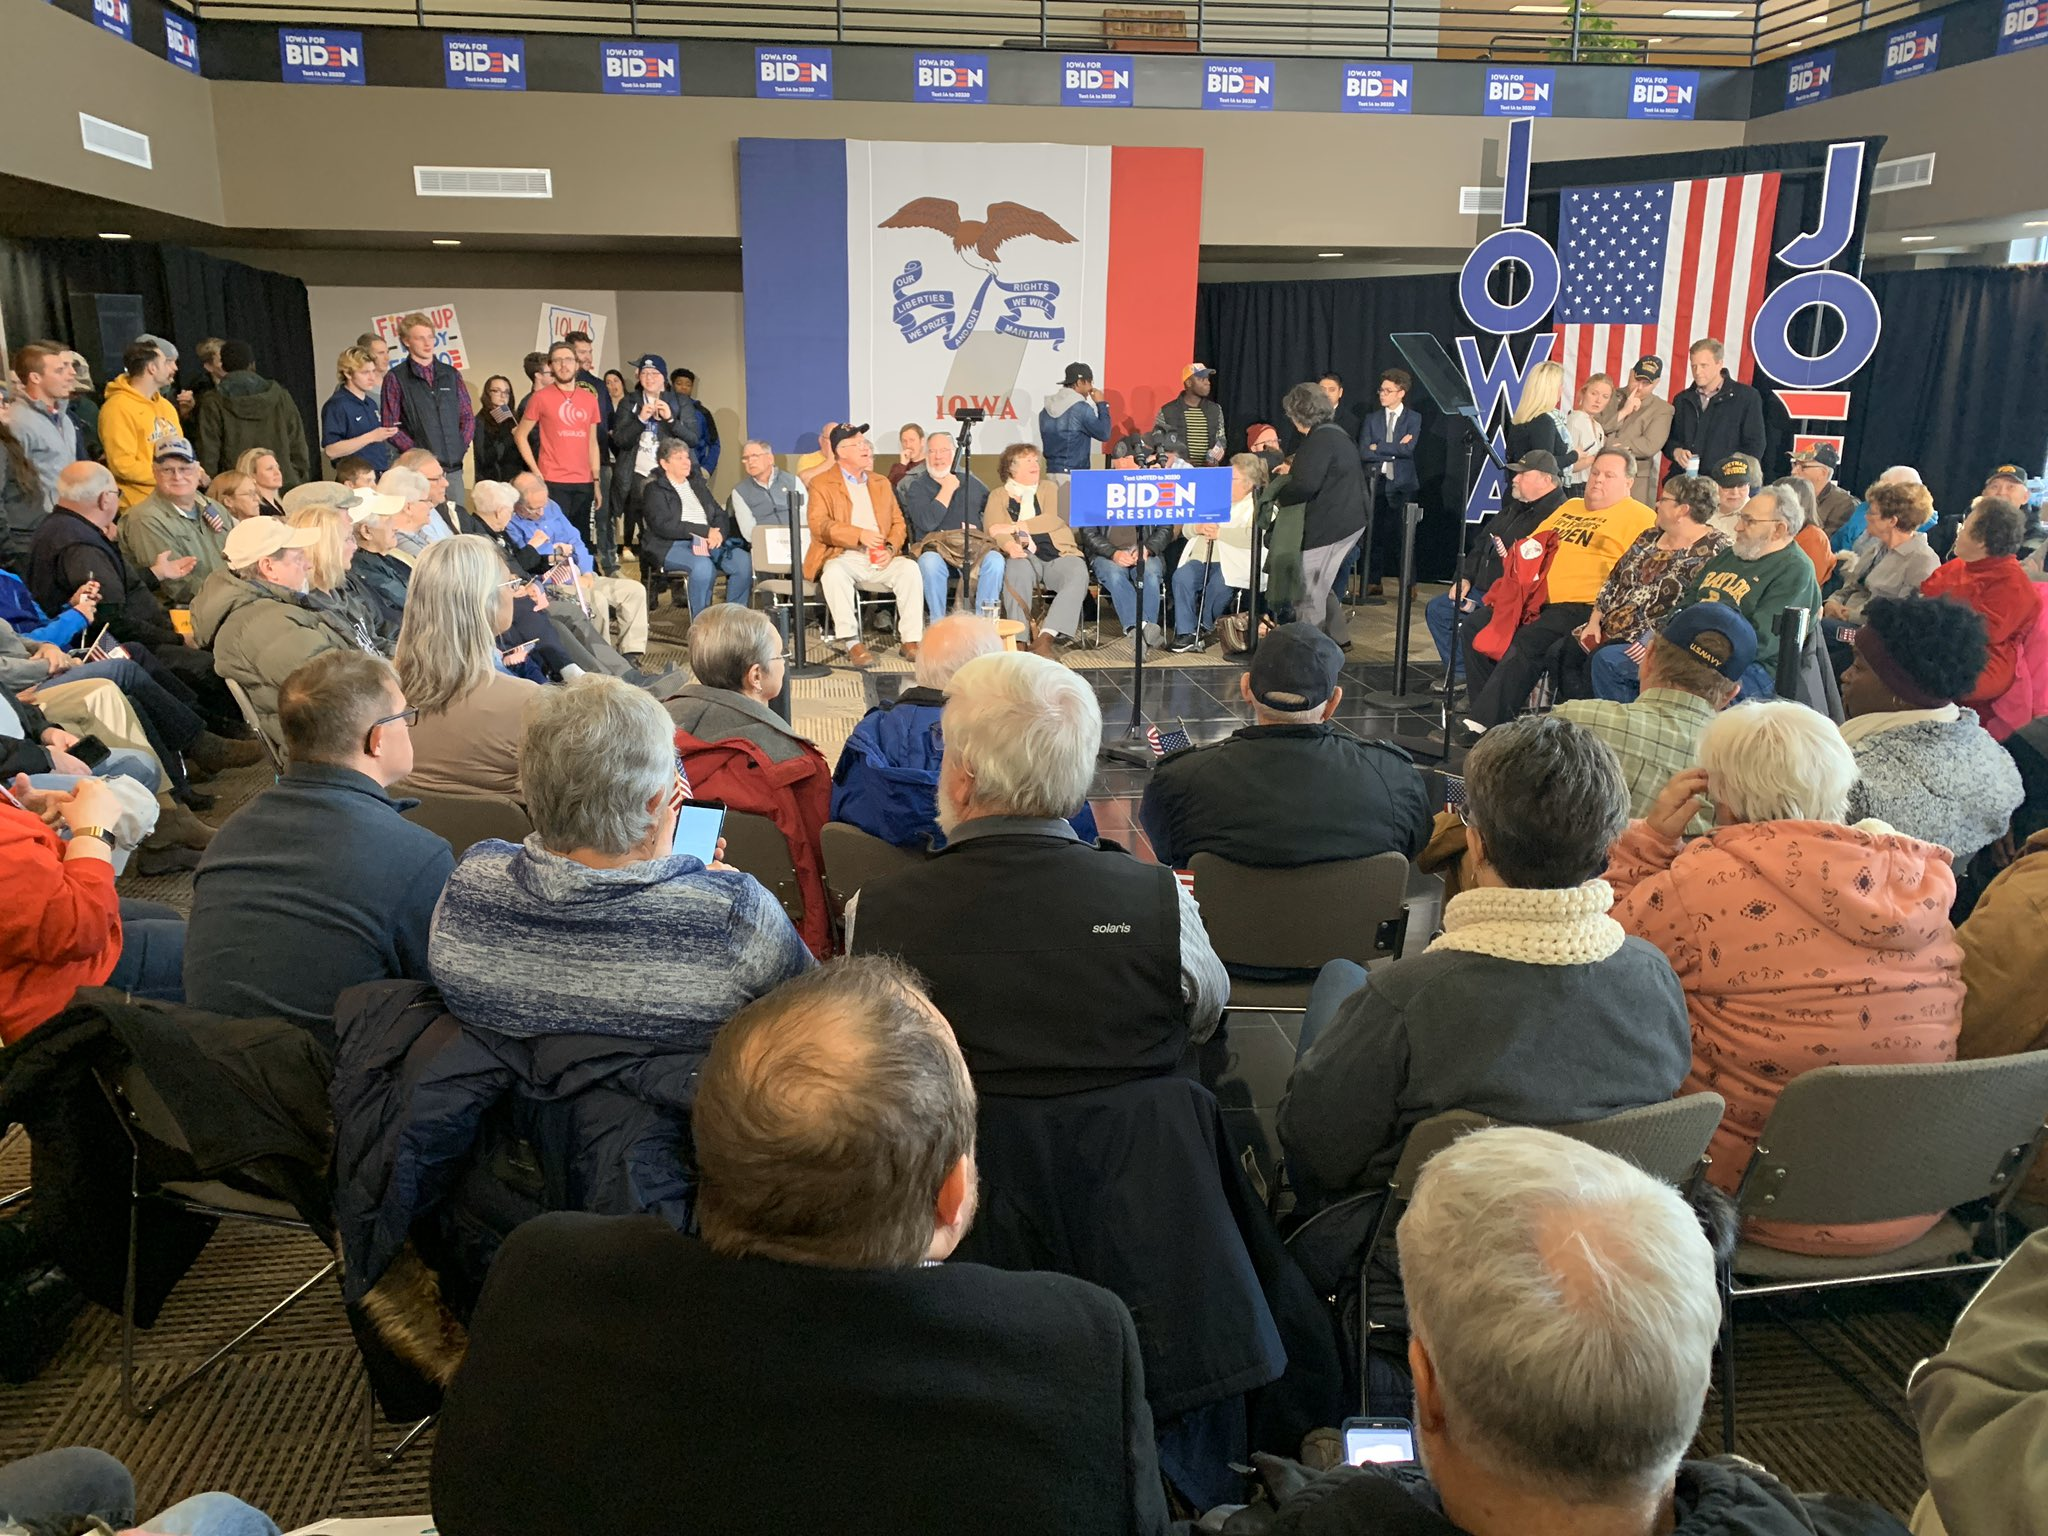 If Biden held a veterans town hall and only 50 people showed up, would anyone even notice?